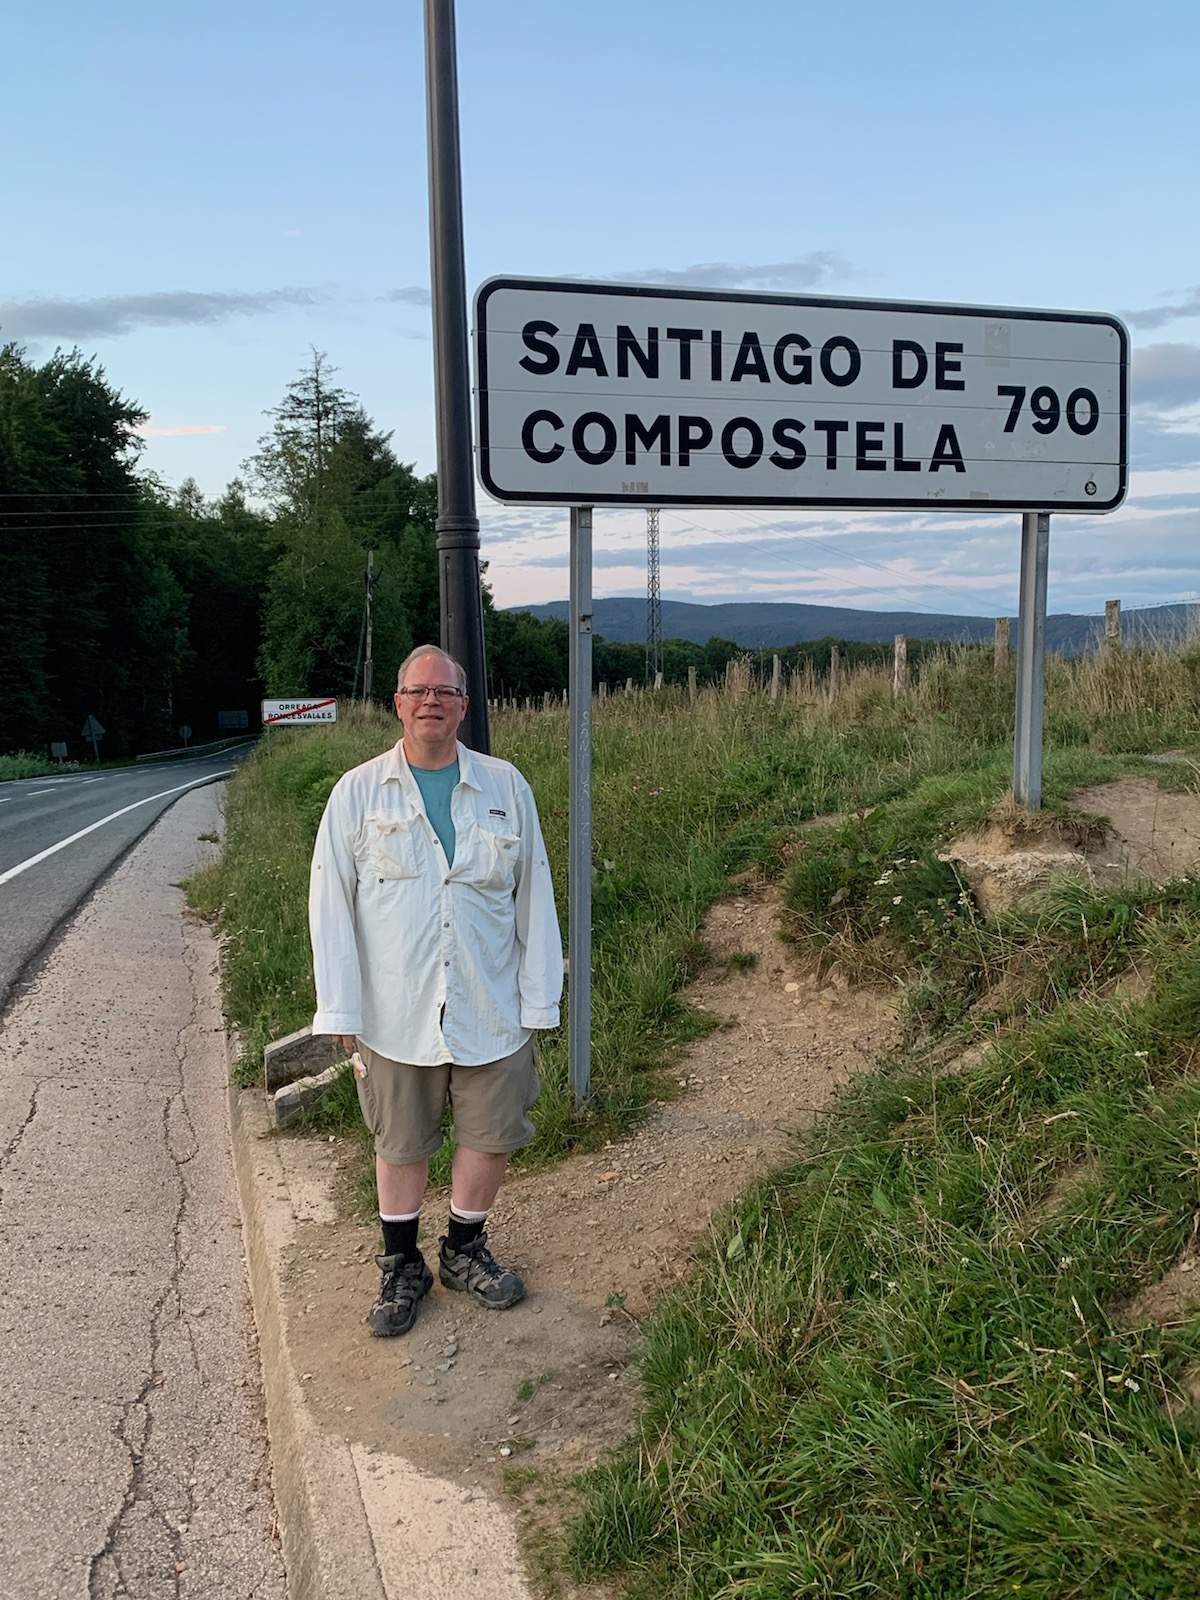 790 km to the Cathedral of Santiago de Compostela